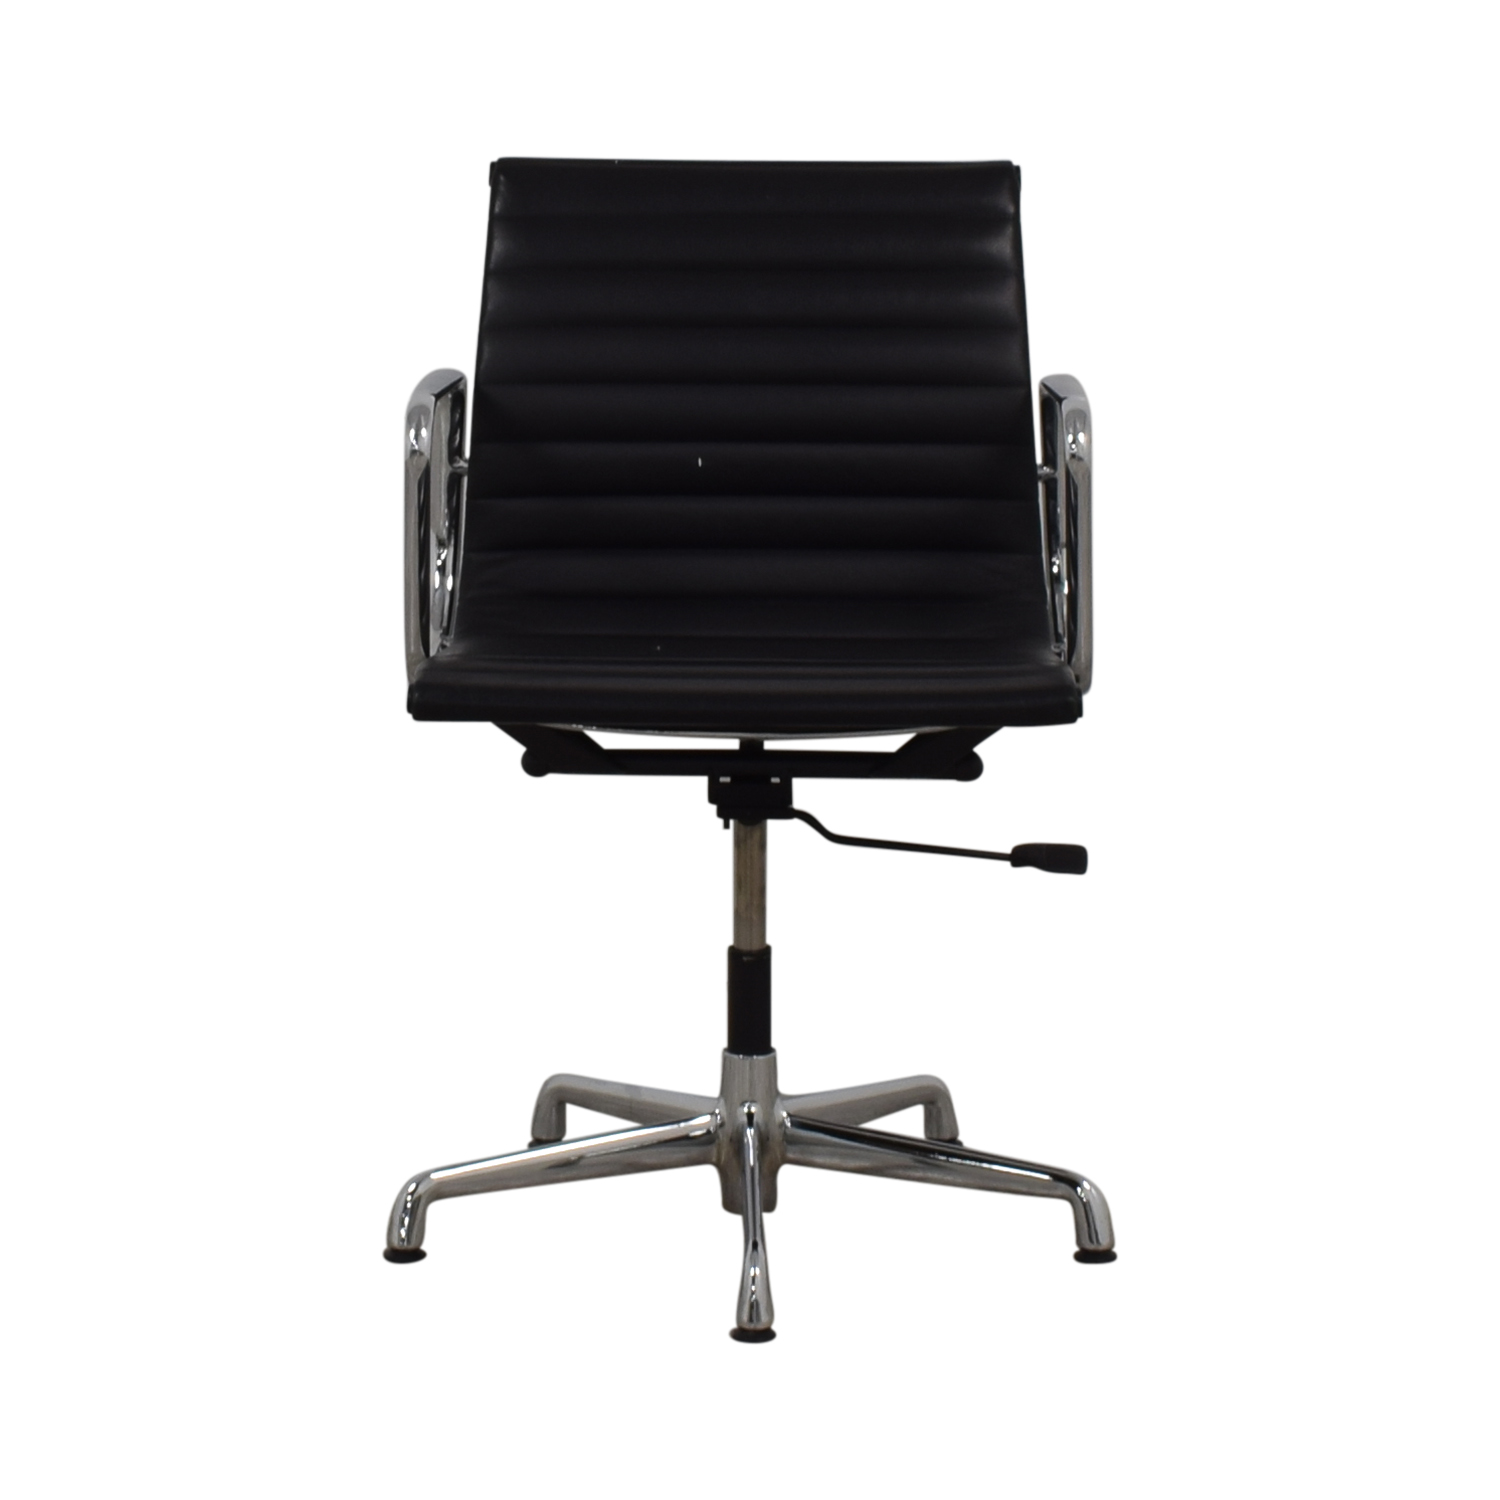 Herman Miller Eames Aluminum Black Leather Office Chair / Home Office Chairs